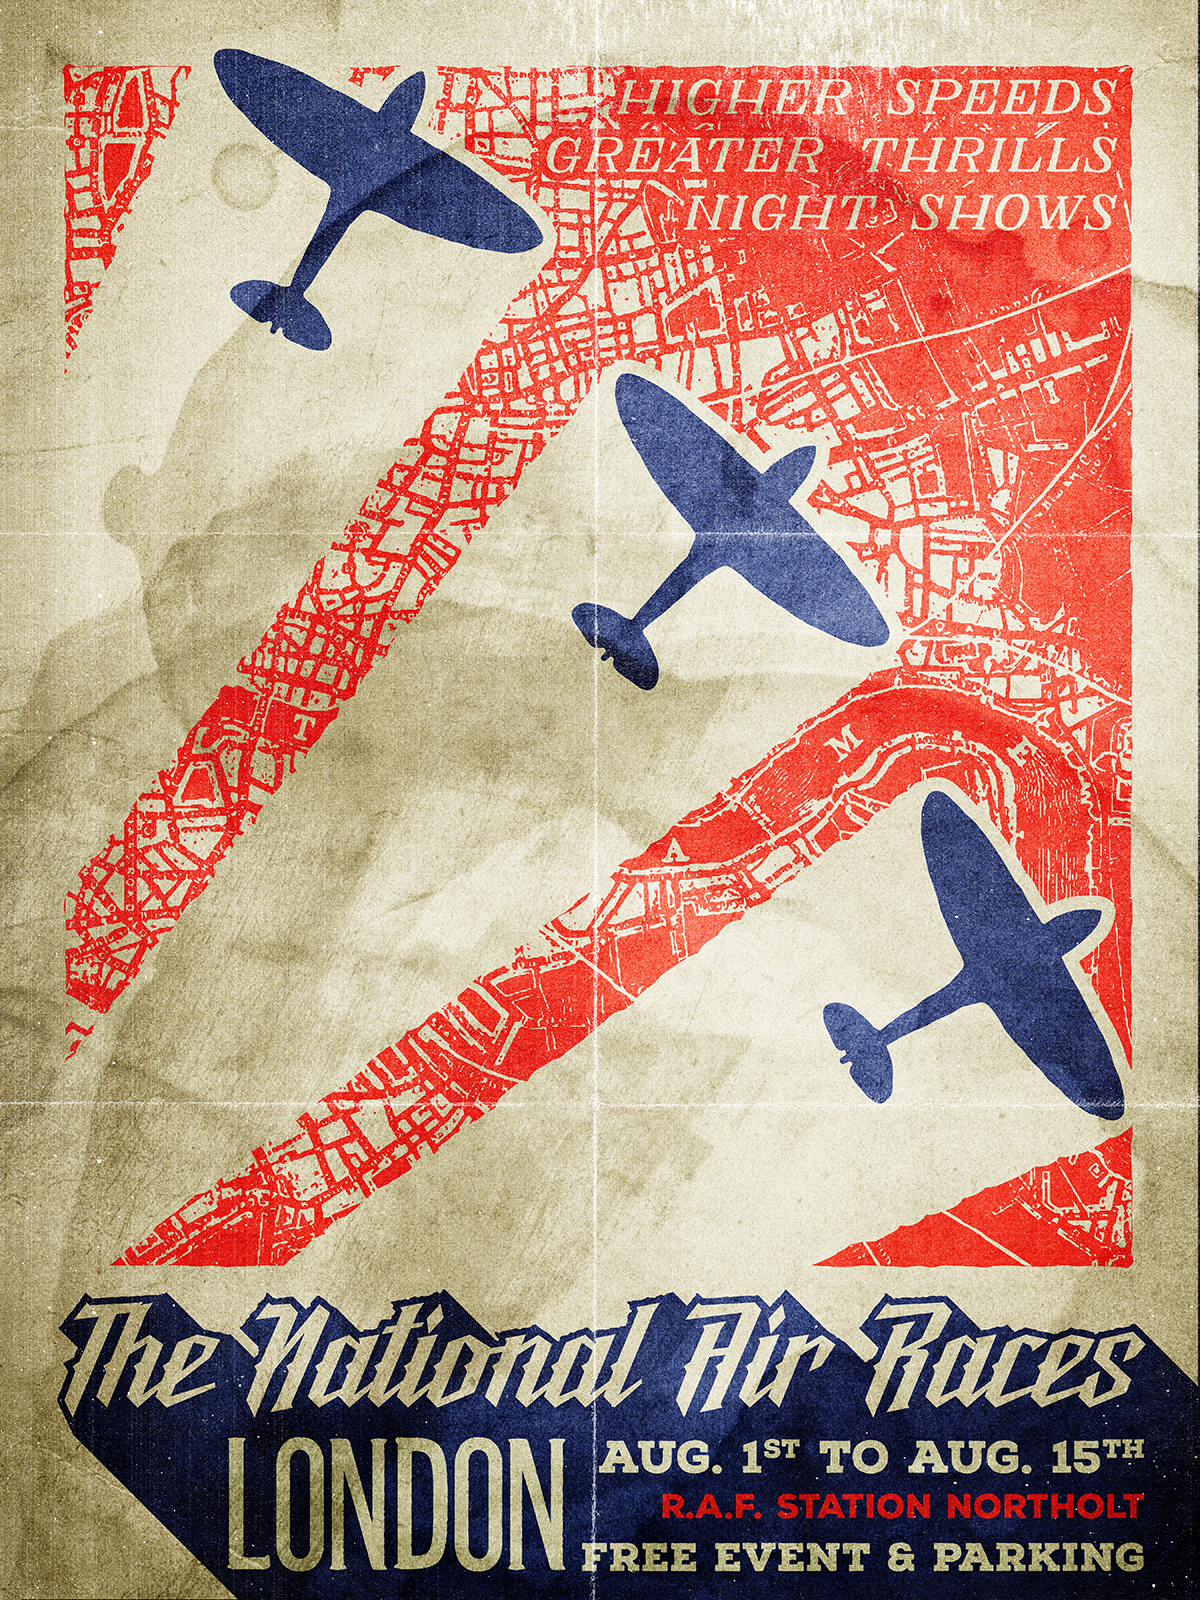 Poster design tutorial -  Vintage Airshow Poster Design Tutorial By Simonh4